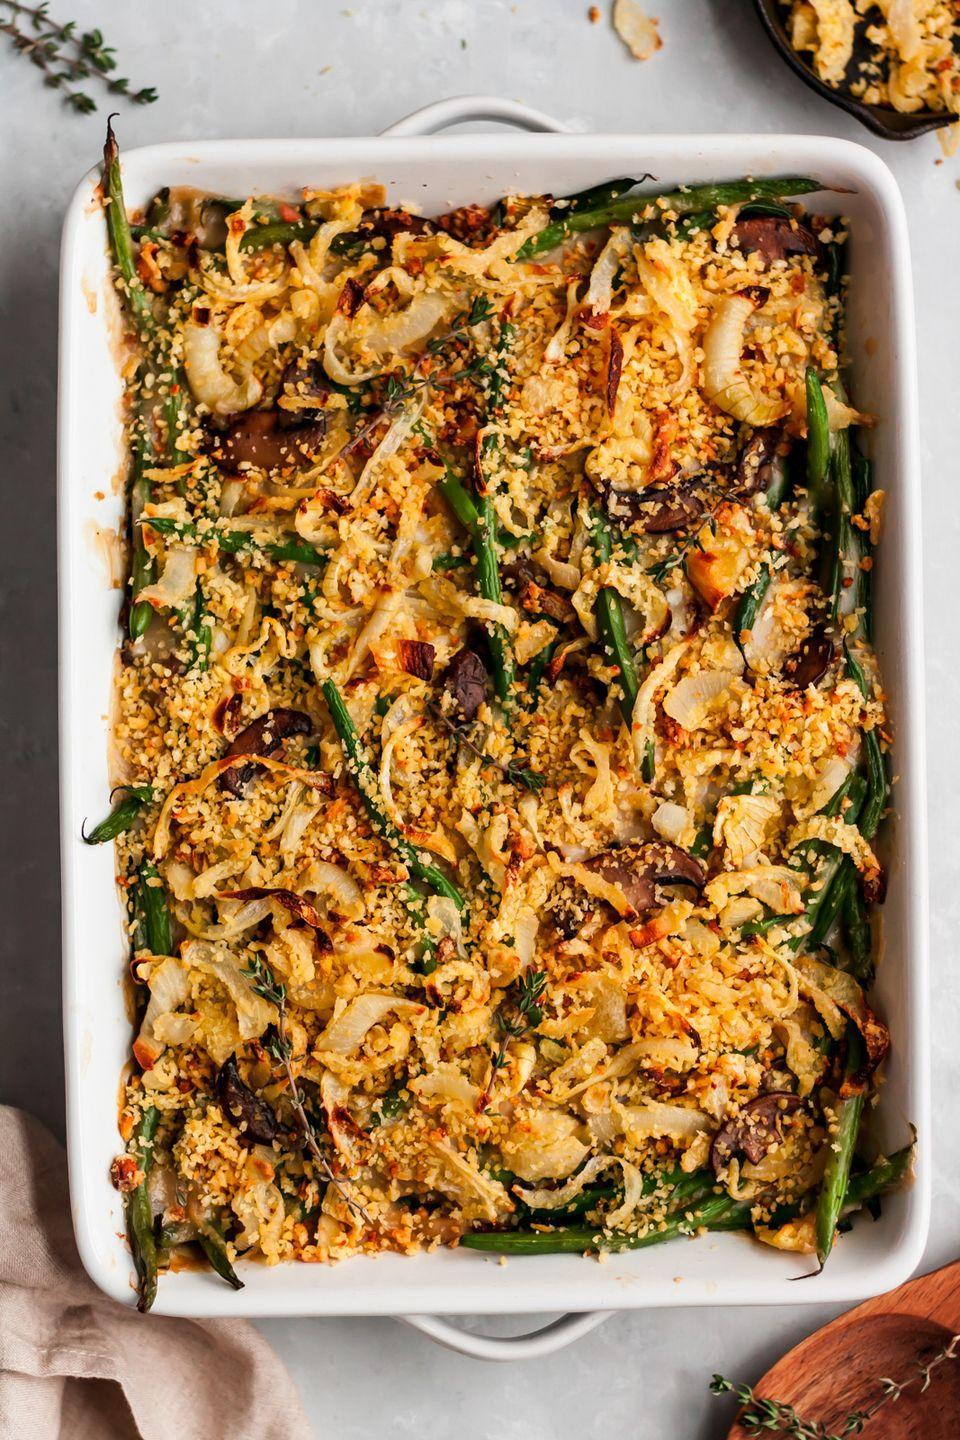 """<p>This homemade <a href=""""https://www.countryliving.com/food-drinks/g2728/green-bean-casserole-recipe/"""" rel=""""nofollow noopener"""" target=""""_blank"""" data-ylk=""""slk:green bean casserole"""" class=""""link rapid-noclick-resp"""">green bean casserole</a> is so incredible, you won't even realize it's lightened up. This blogger calls it """"creamy, crunchy, and fresh.""""</p><p><strong>Get the recipe at <a href=""""https://www.ambitiouskitchen.com/best-homemade-healthy-green-bean-casserole/"""" rel=""""nofollow noopener"""" target=""""_blank"""" data-ylk=""""slk:Ambitious Kitchen"""" class=""""link rapid-noclick-resp"""">Ambitious Kitchen</a>.</strong> </p>"""